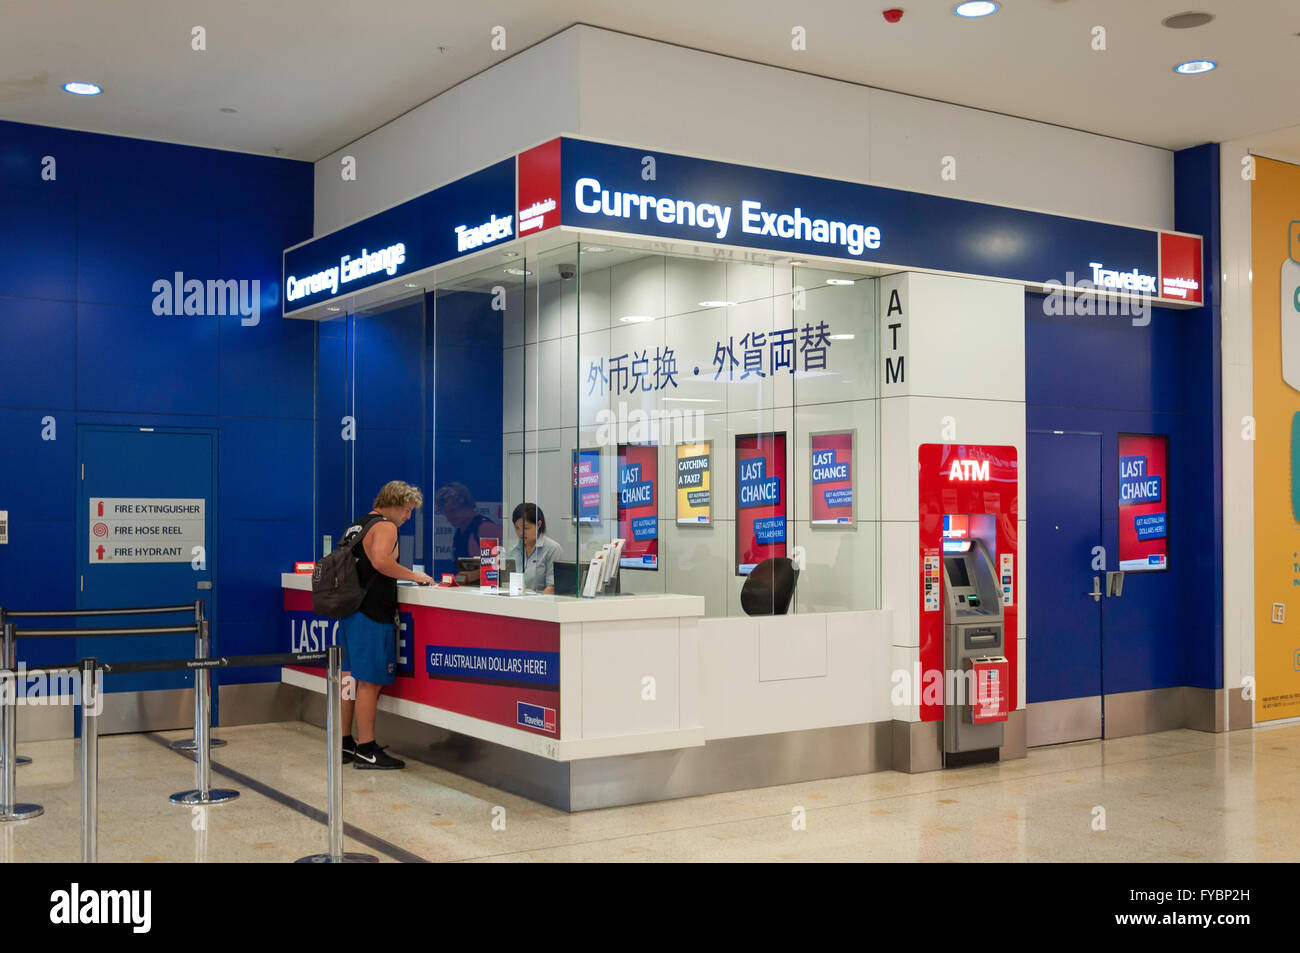 Sydney forex exchange lakemba